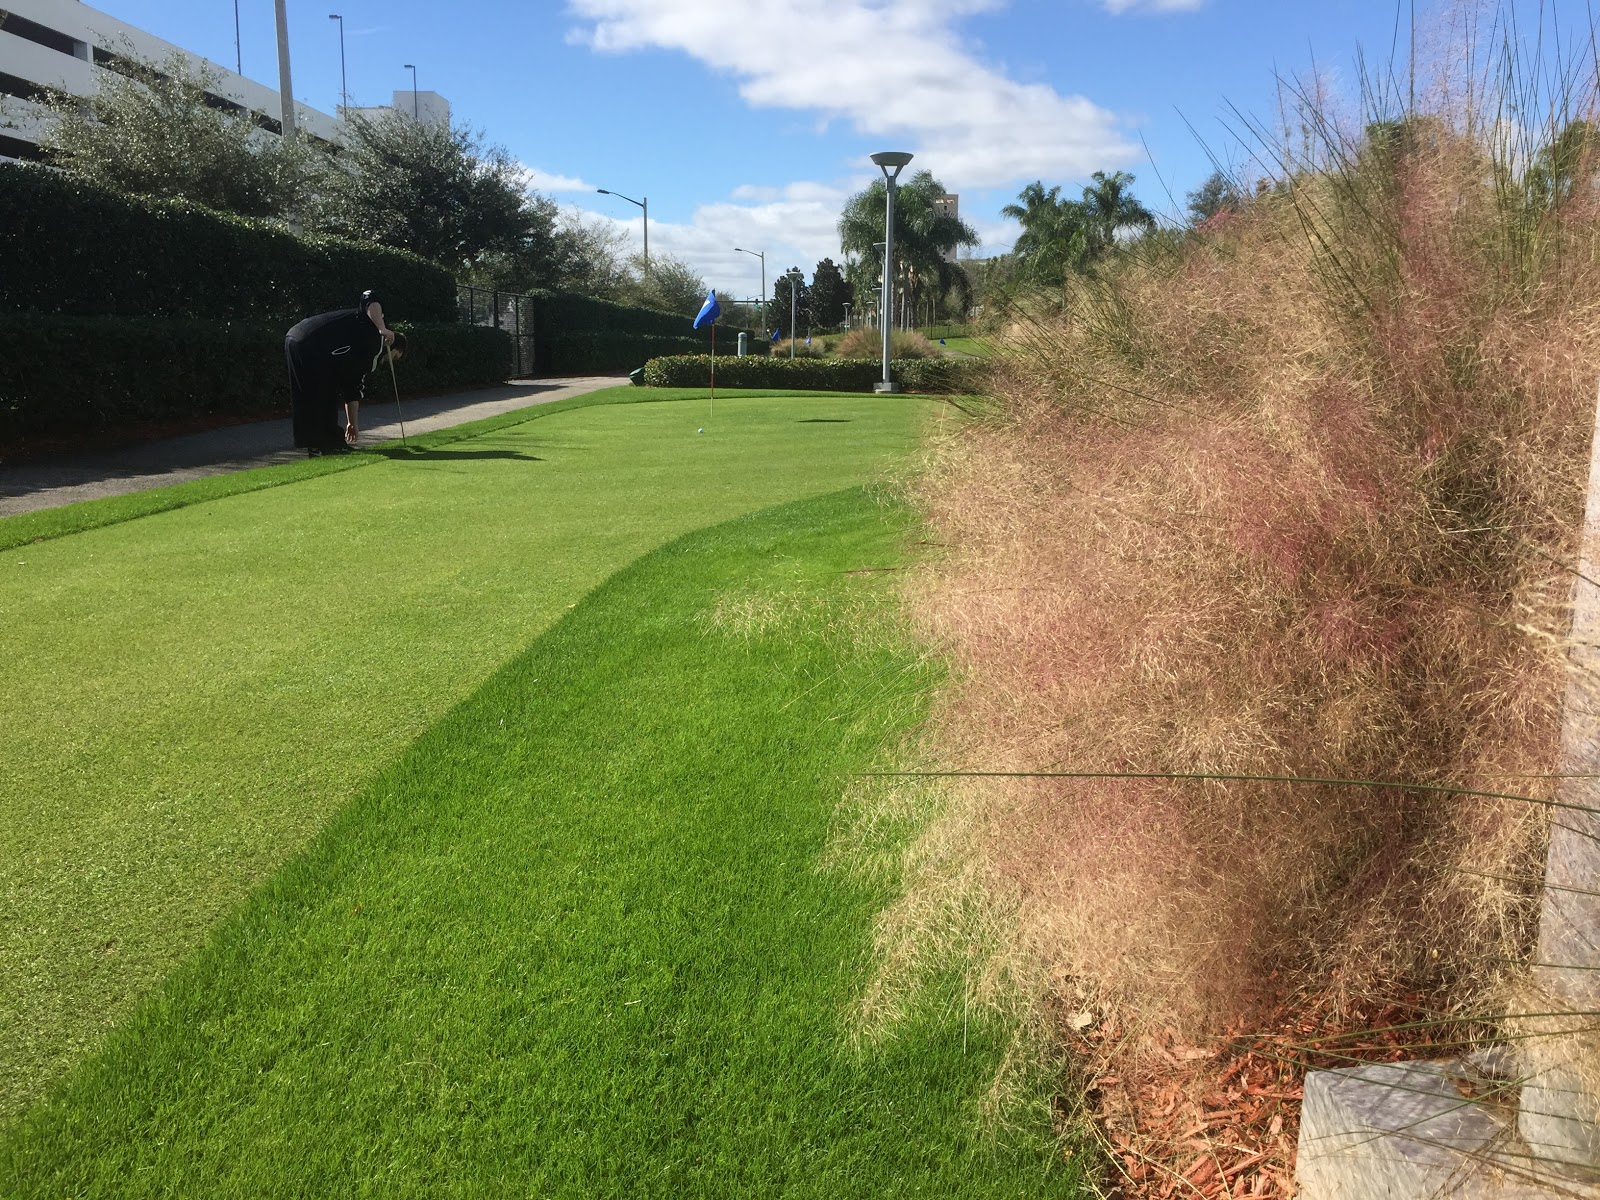 Muhlenbergia capillaris golf course